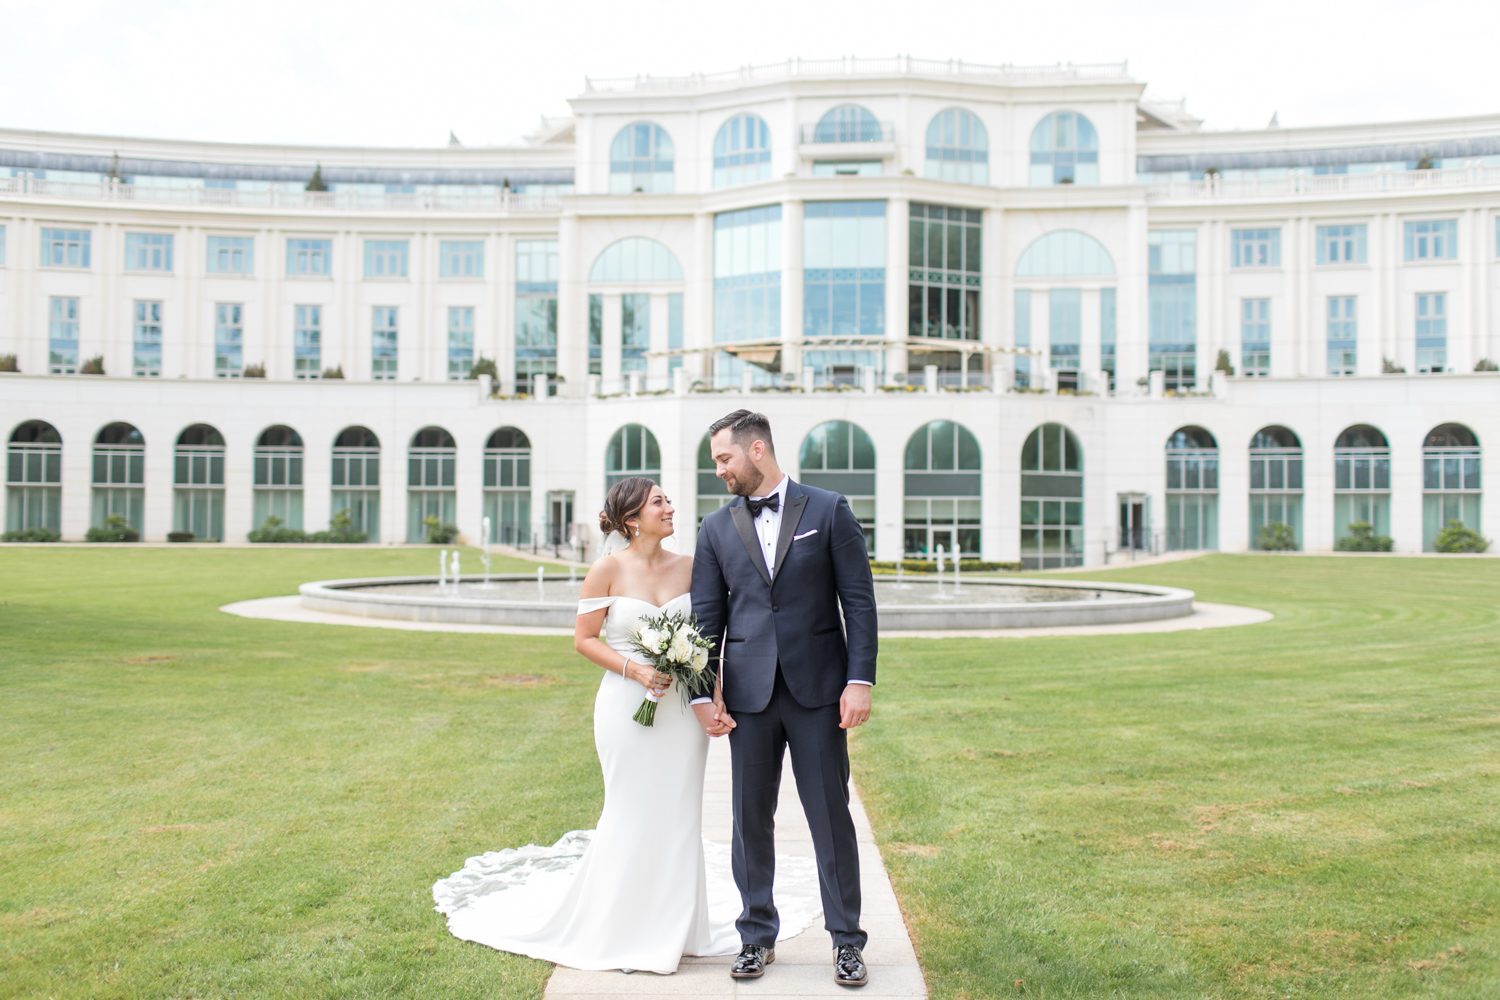 bride and groom posing in front of the powerscourt hotel located in wicklow, ireland